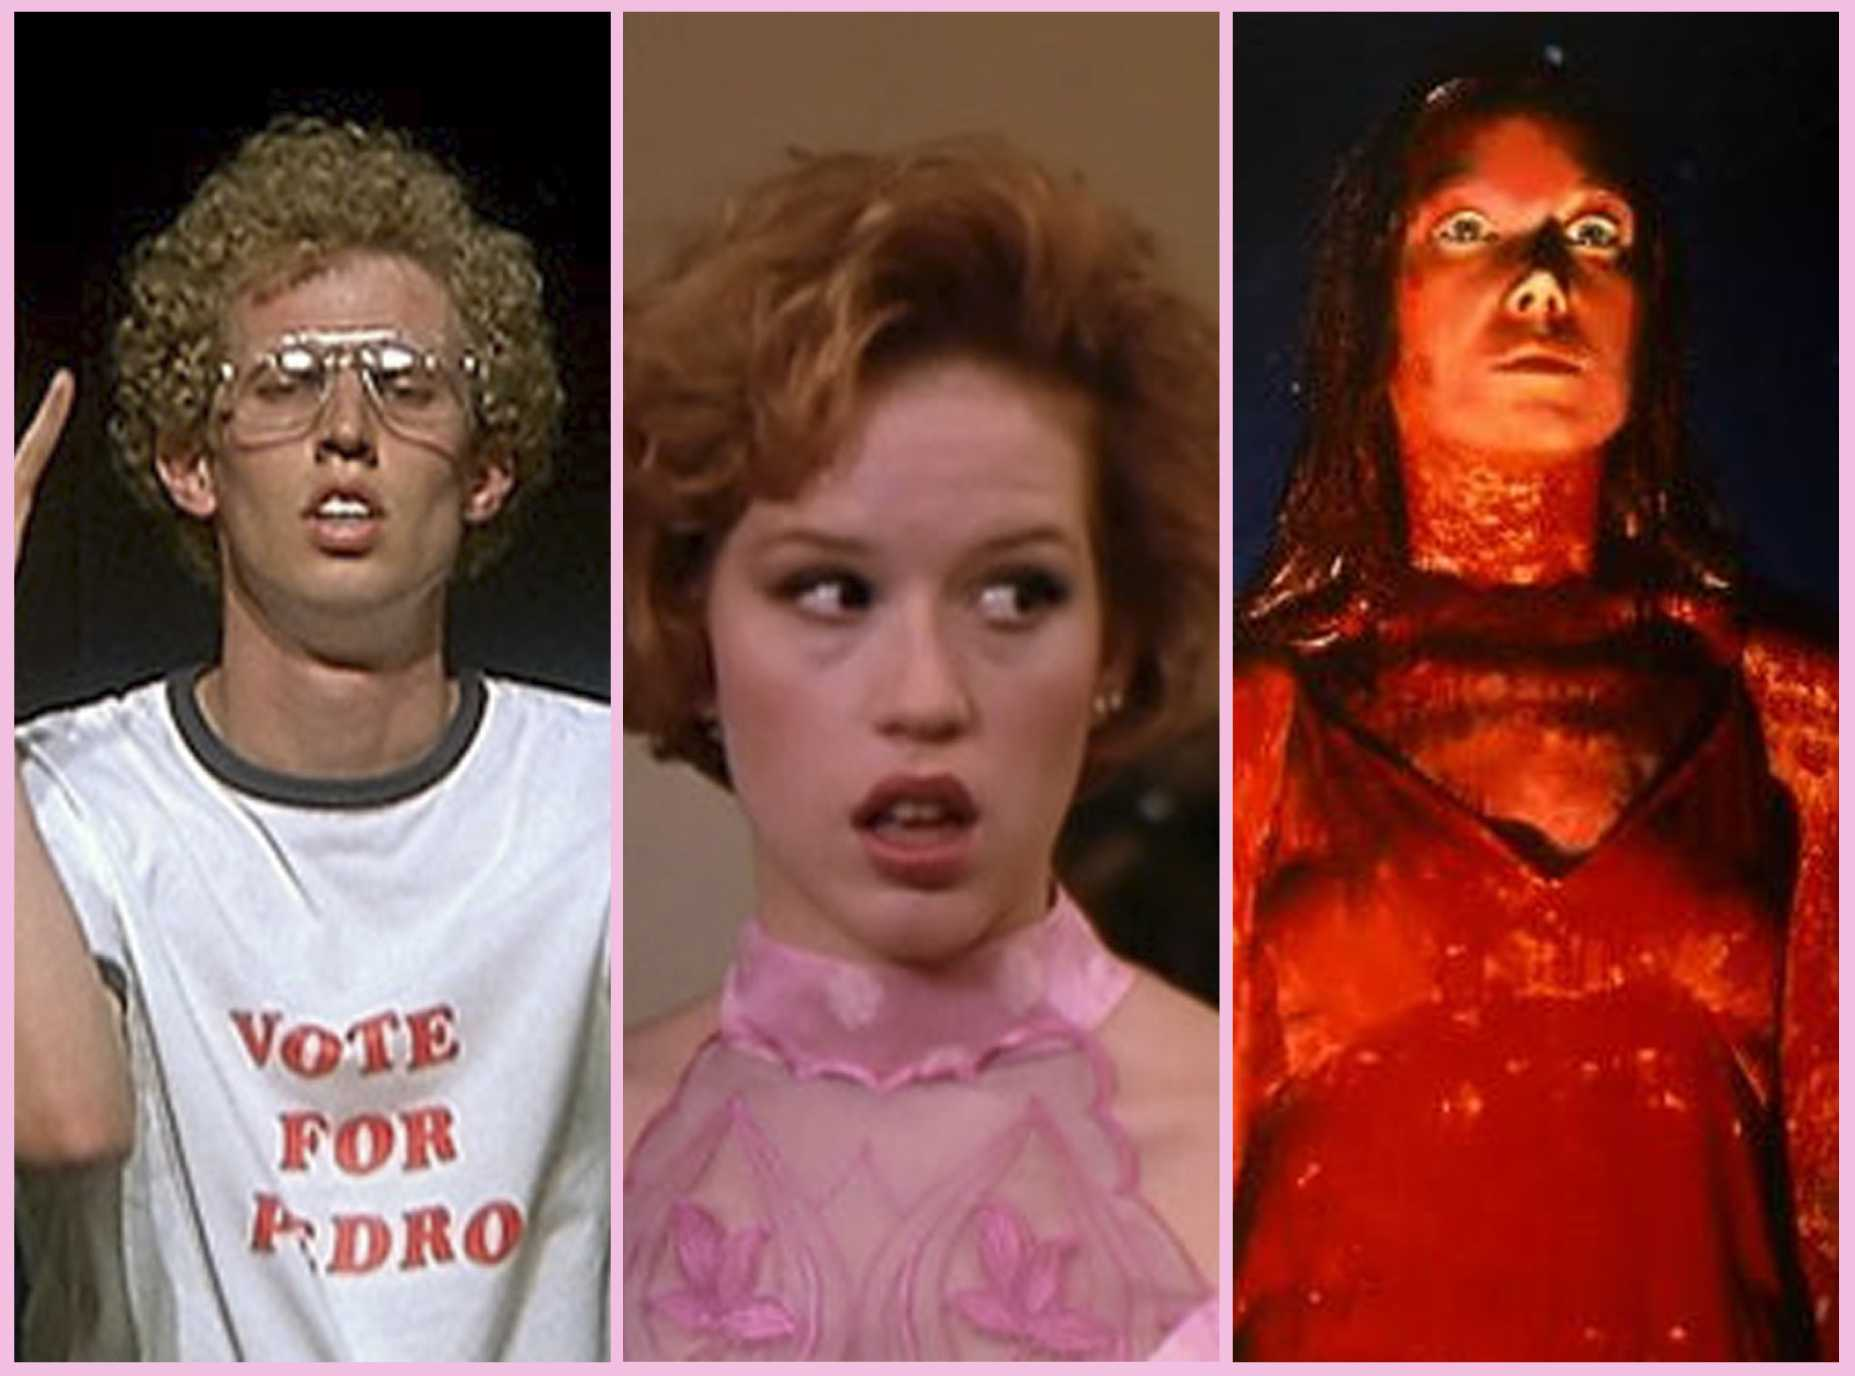 Napoleon Dynamite's promposal, Carrie's prom queen ceremony and Andie's arrival at prom all encompass prom experiences.